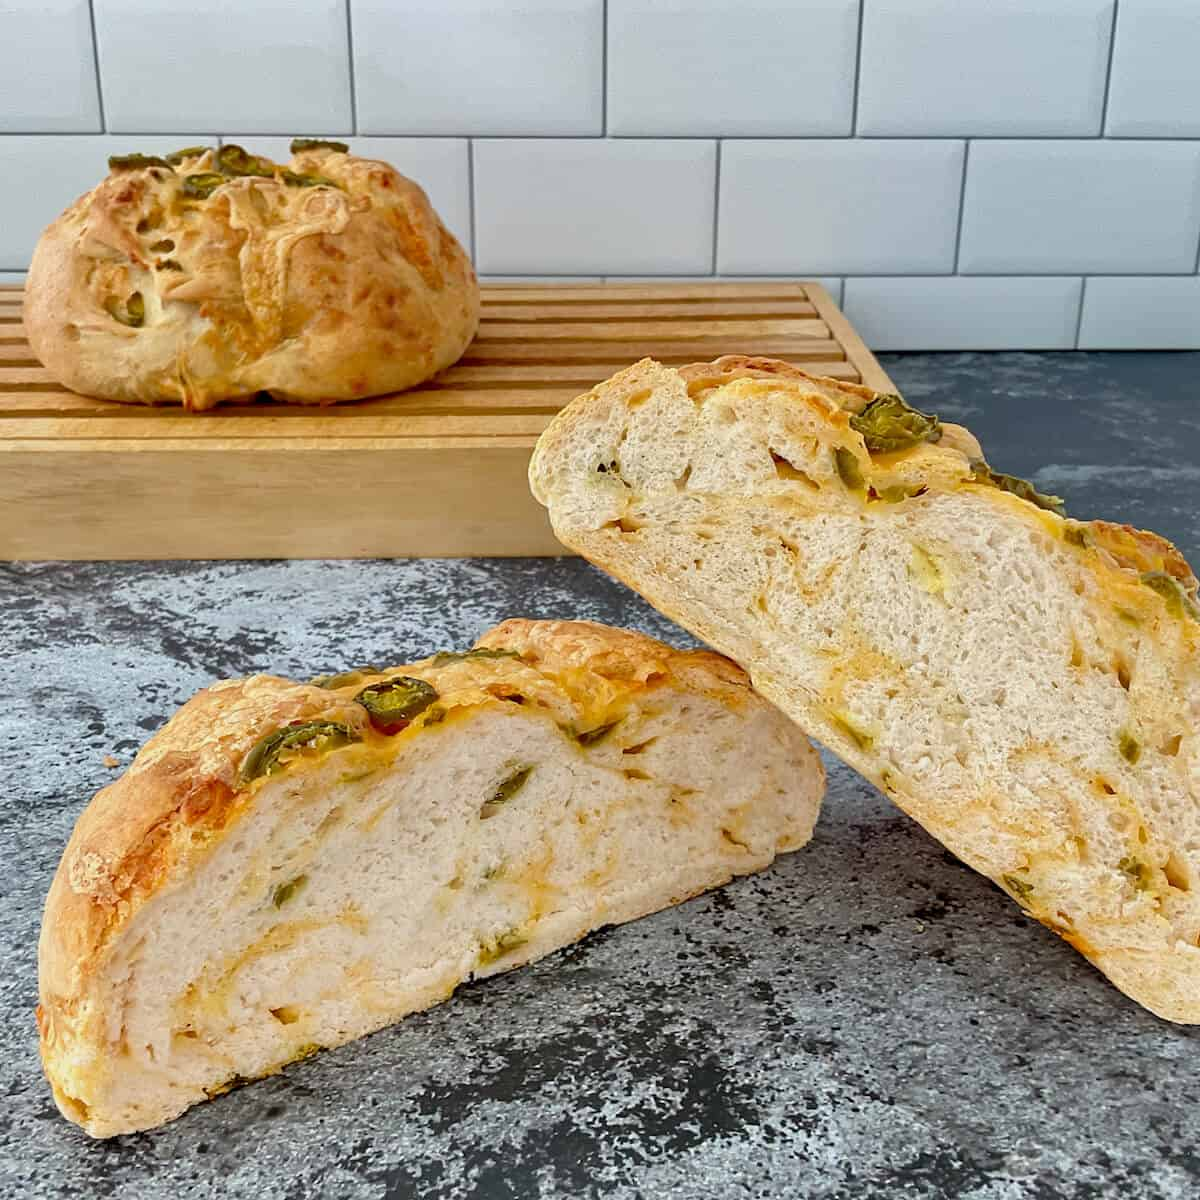 Sourdough Jalapeño Cheddar Bread sliced open closeup with loaf behind on cutting board.